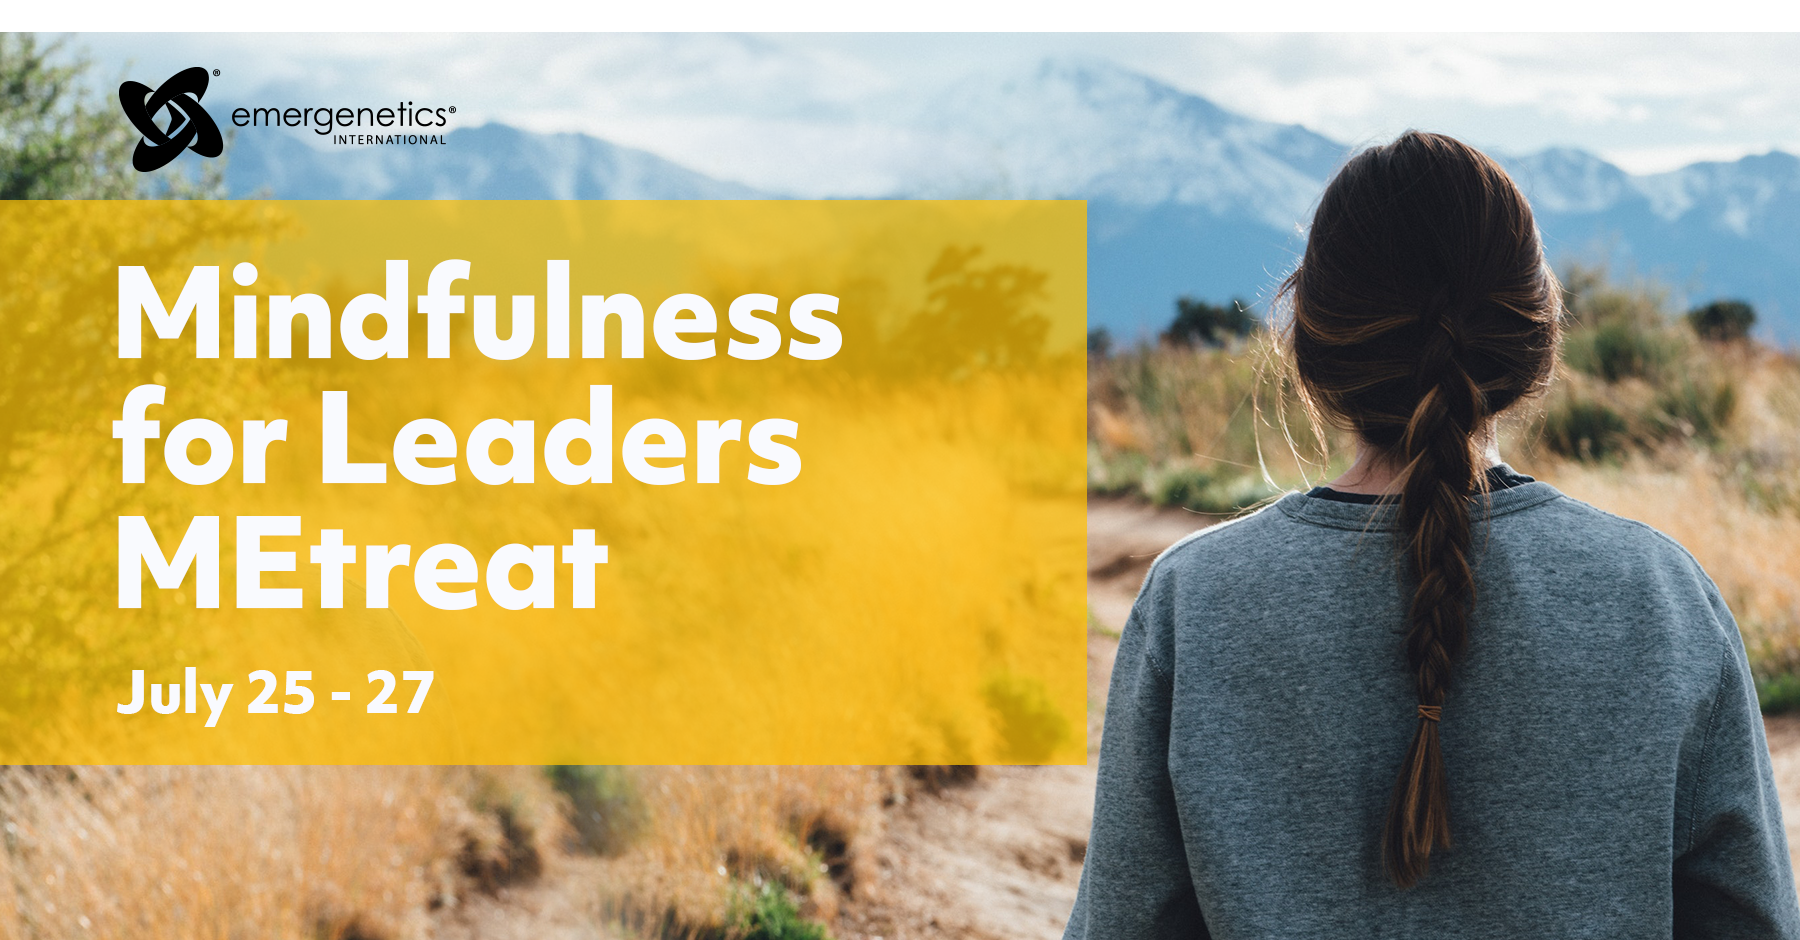 Mindfulness for Leaders - July 25-27